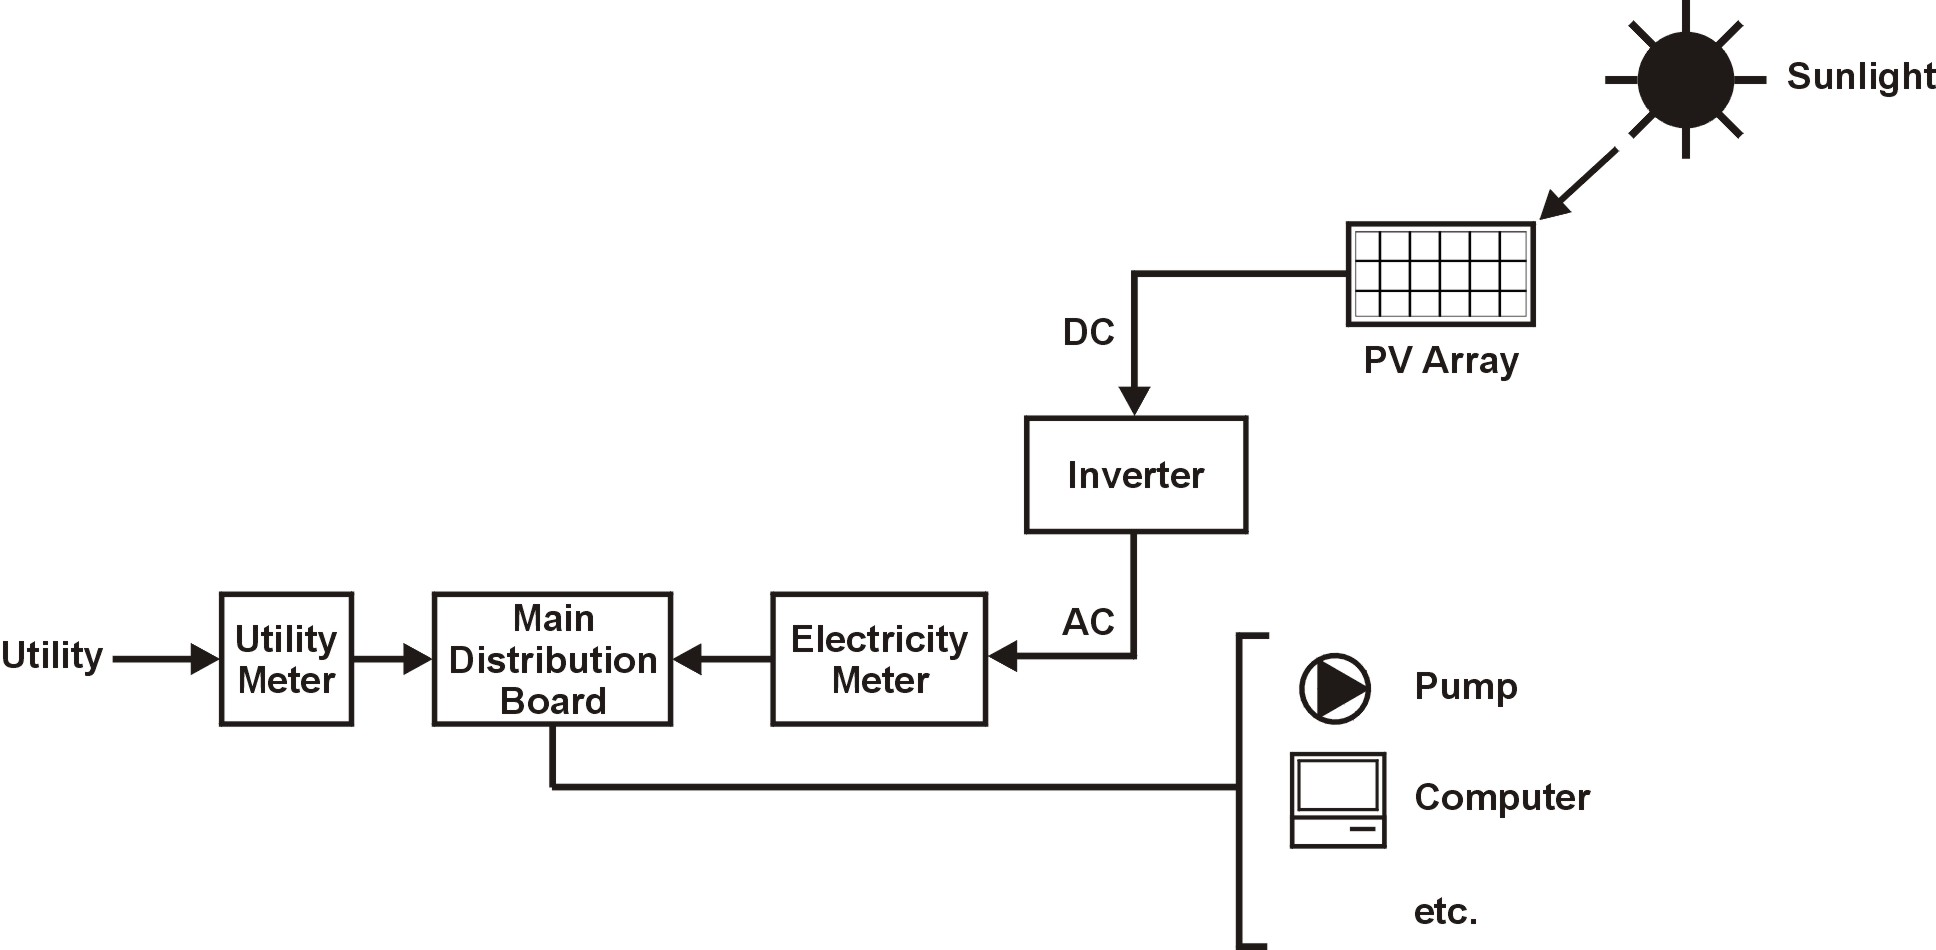 Emsd Hk Re Net Solar Photovoltaic Technology Outline Panel Current Meter Circuit Diagram Grid Connected Or Tied Pv Systems The Text Above Describes